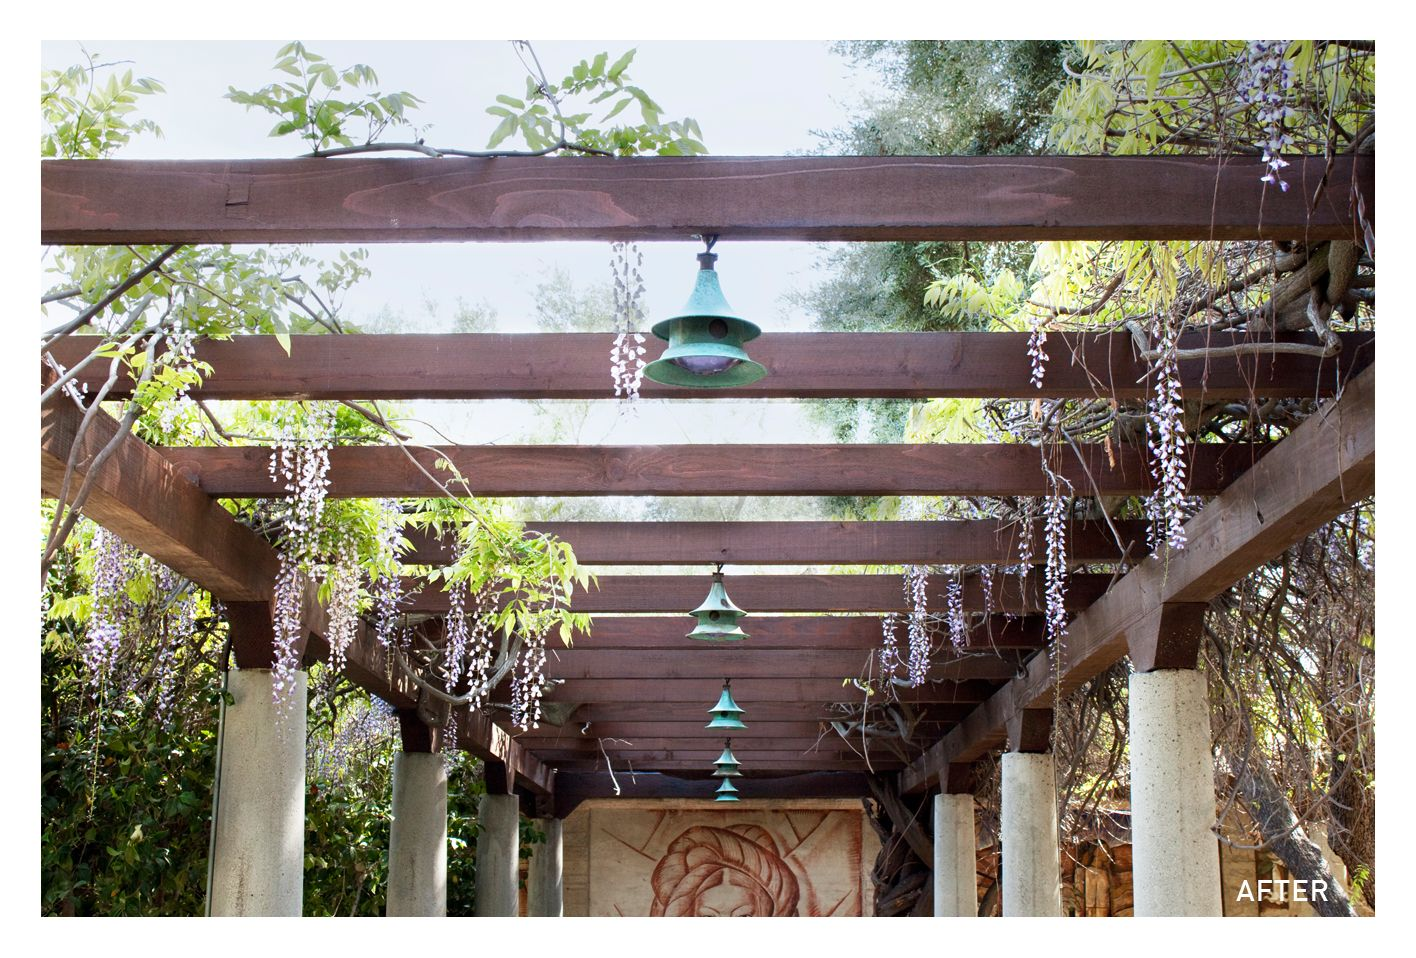 Decoration Ideas, : Contemporary Garden Decoration Design Ideas With Brown  Wood English Garden Trellis And